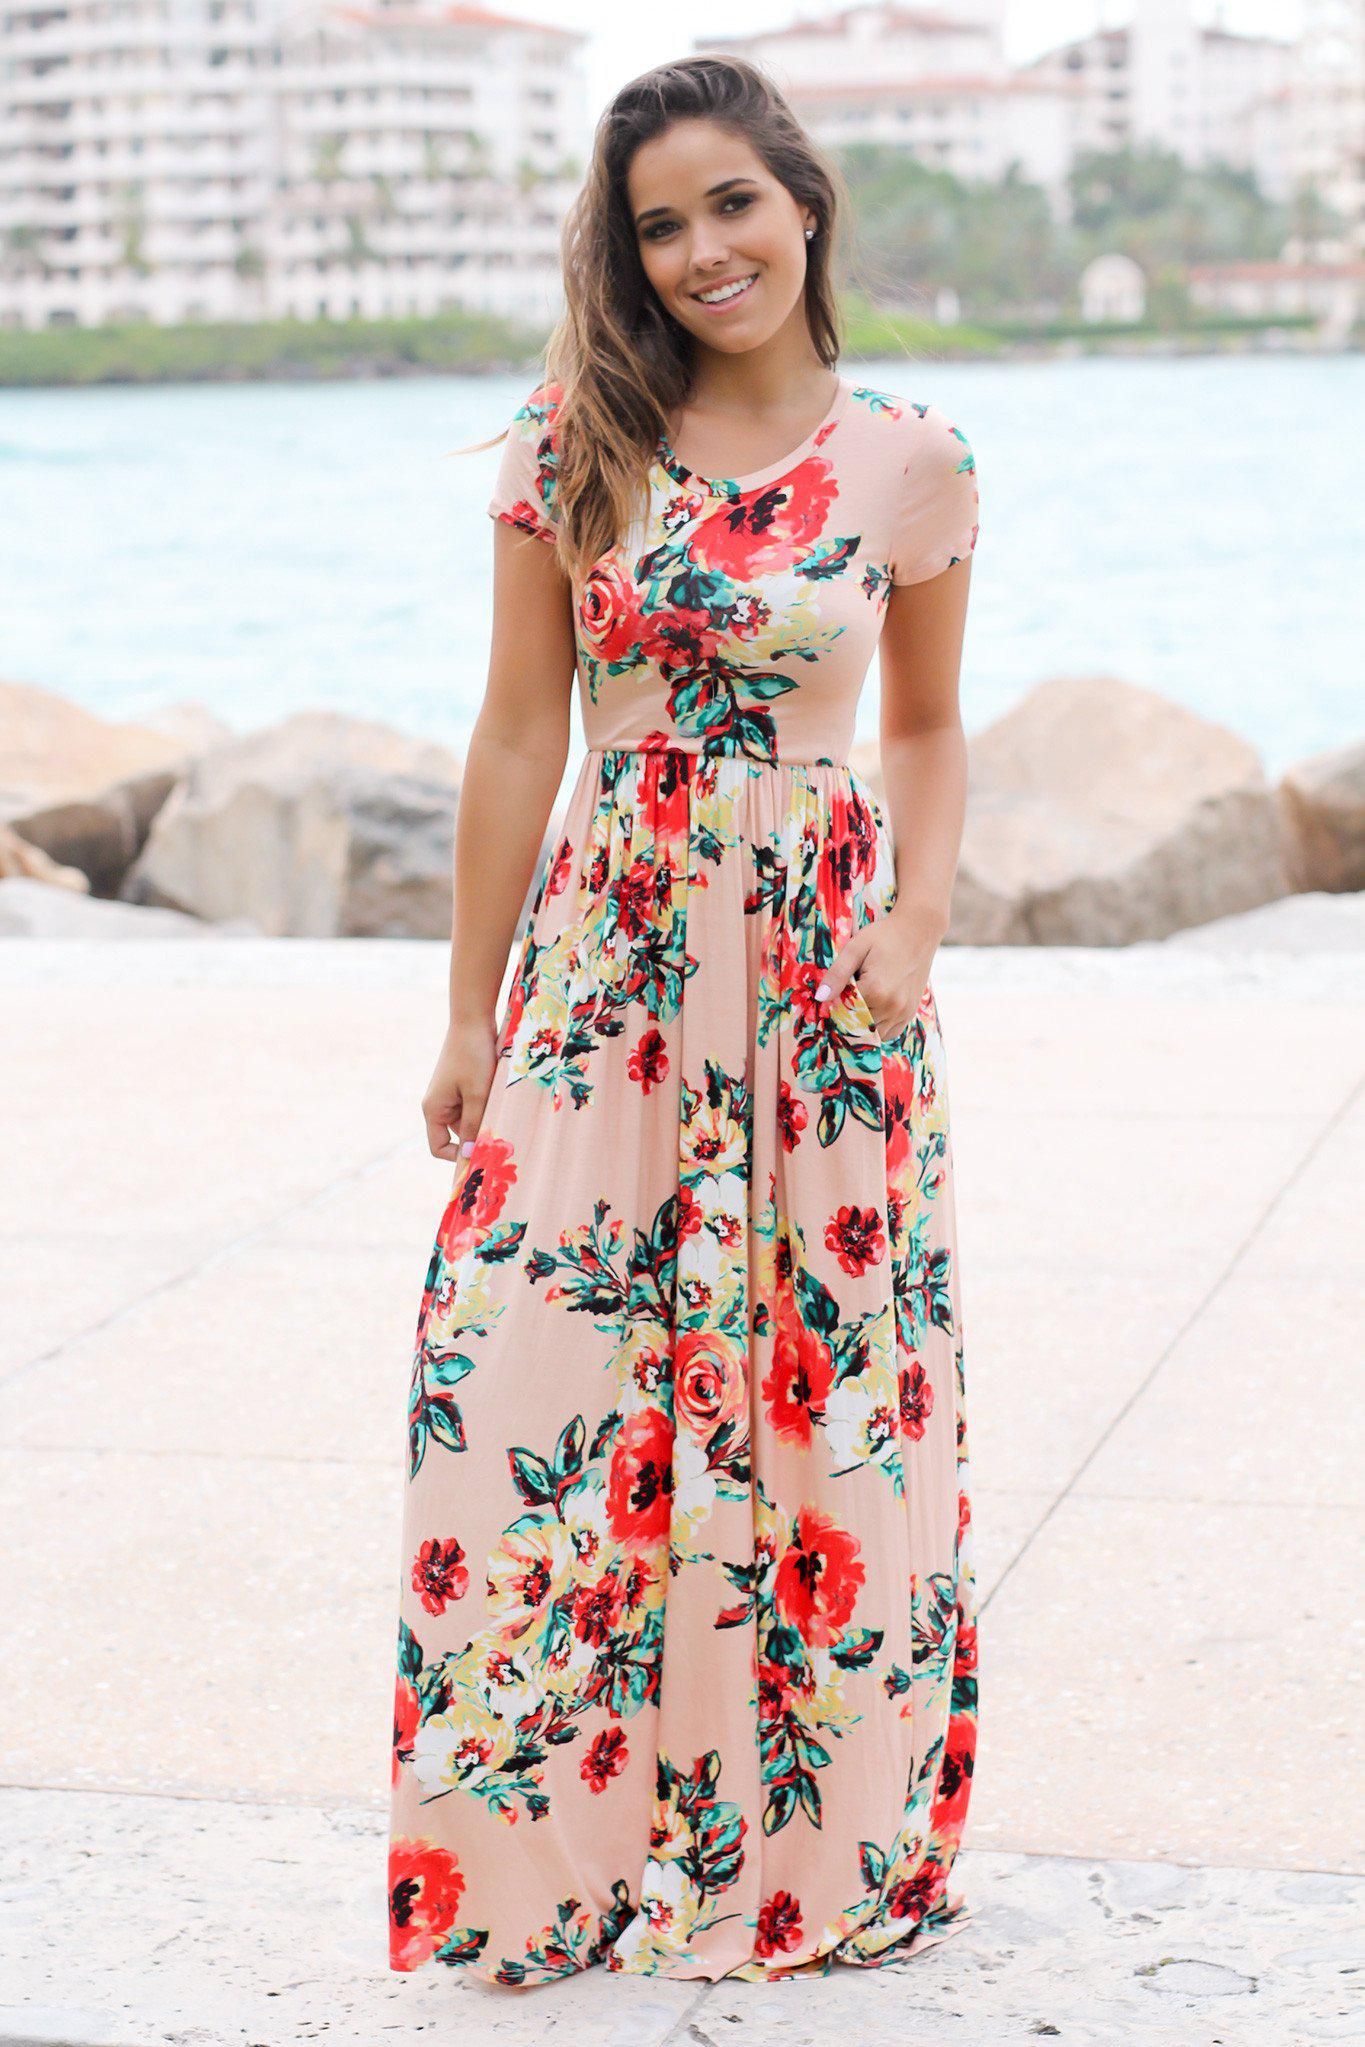 Blush Floral Short Sleeve Maxi Dress with Pockets